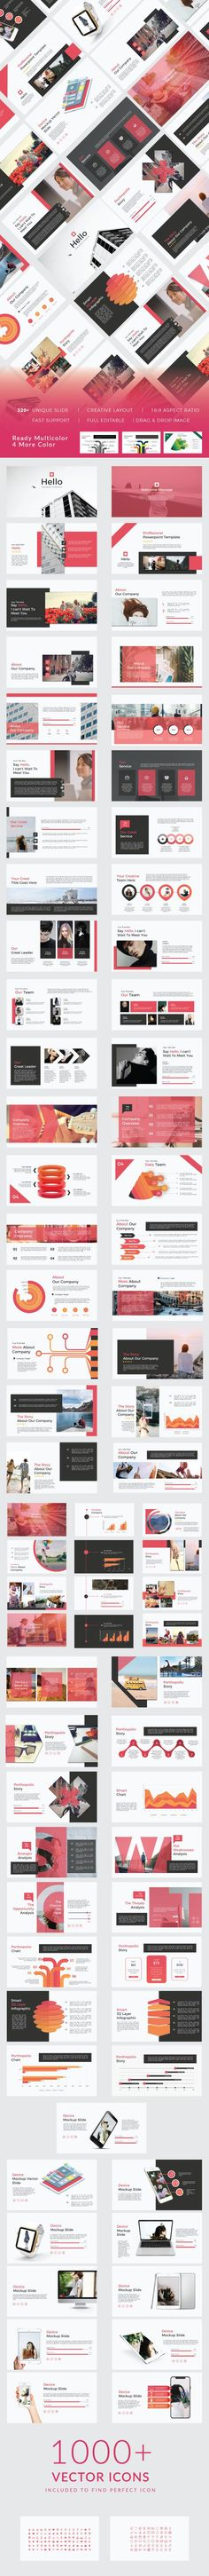 Hello Creative Keynote For Your Business